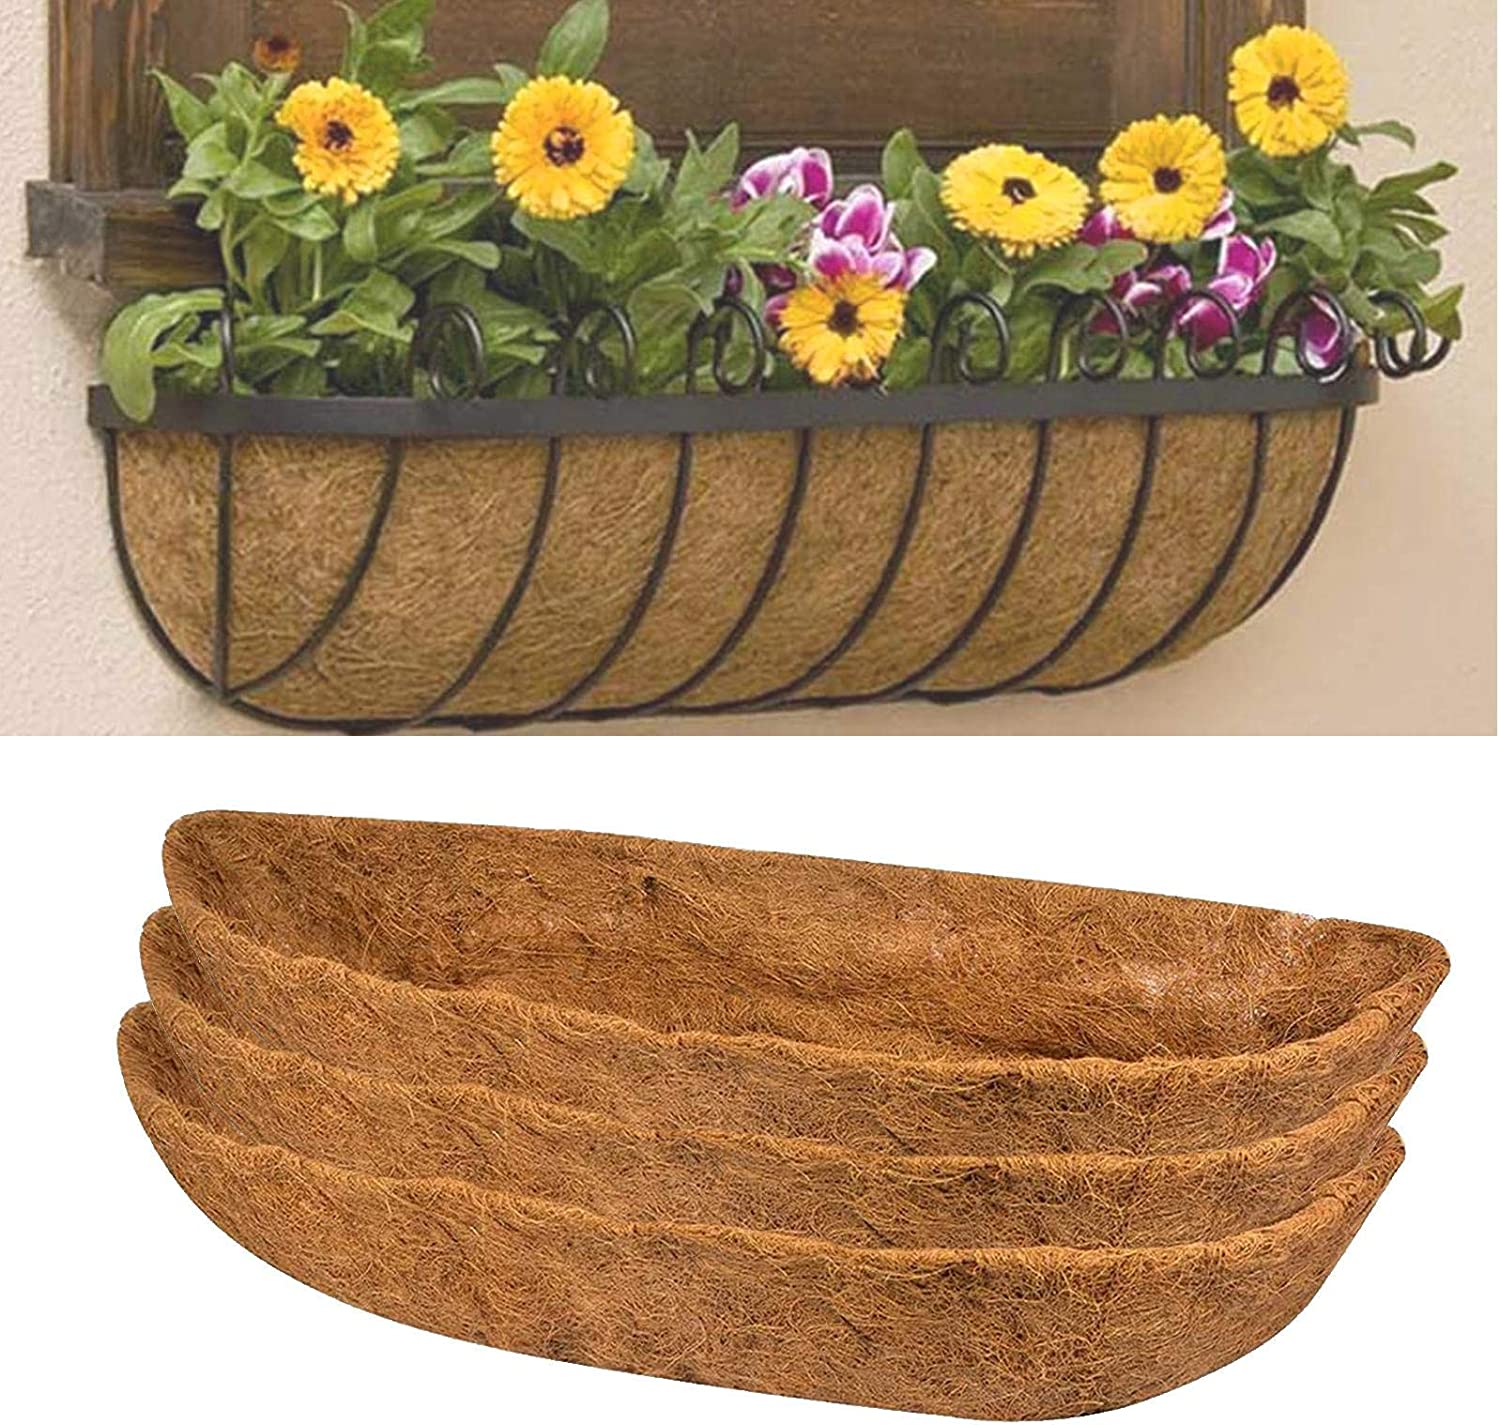 Ksruee Pack of 3 Extra Deep 24 Wall Liner Mail order Planter Fresno Mall Coco Basket